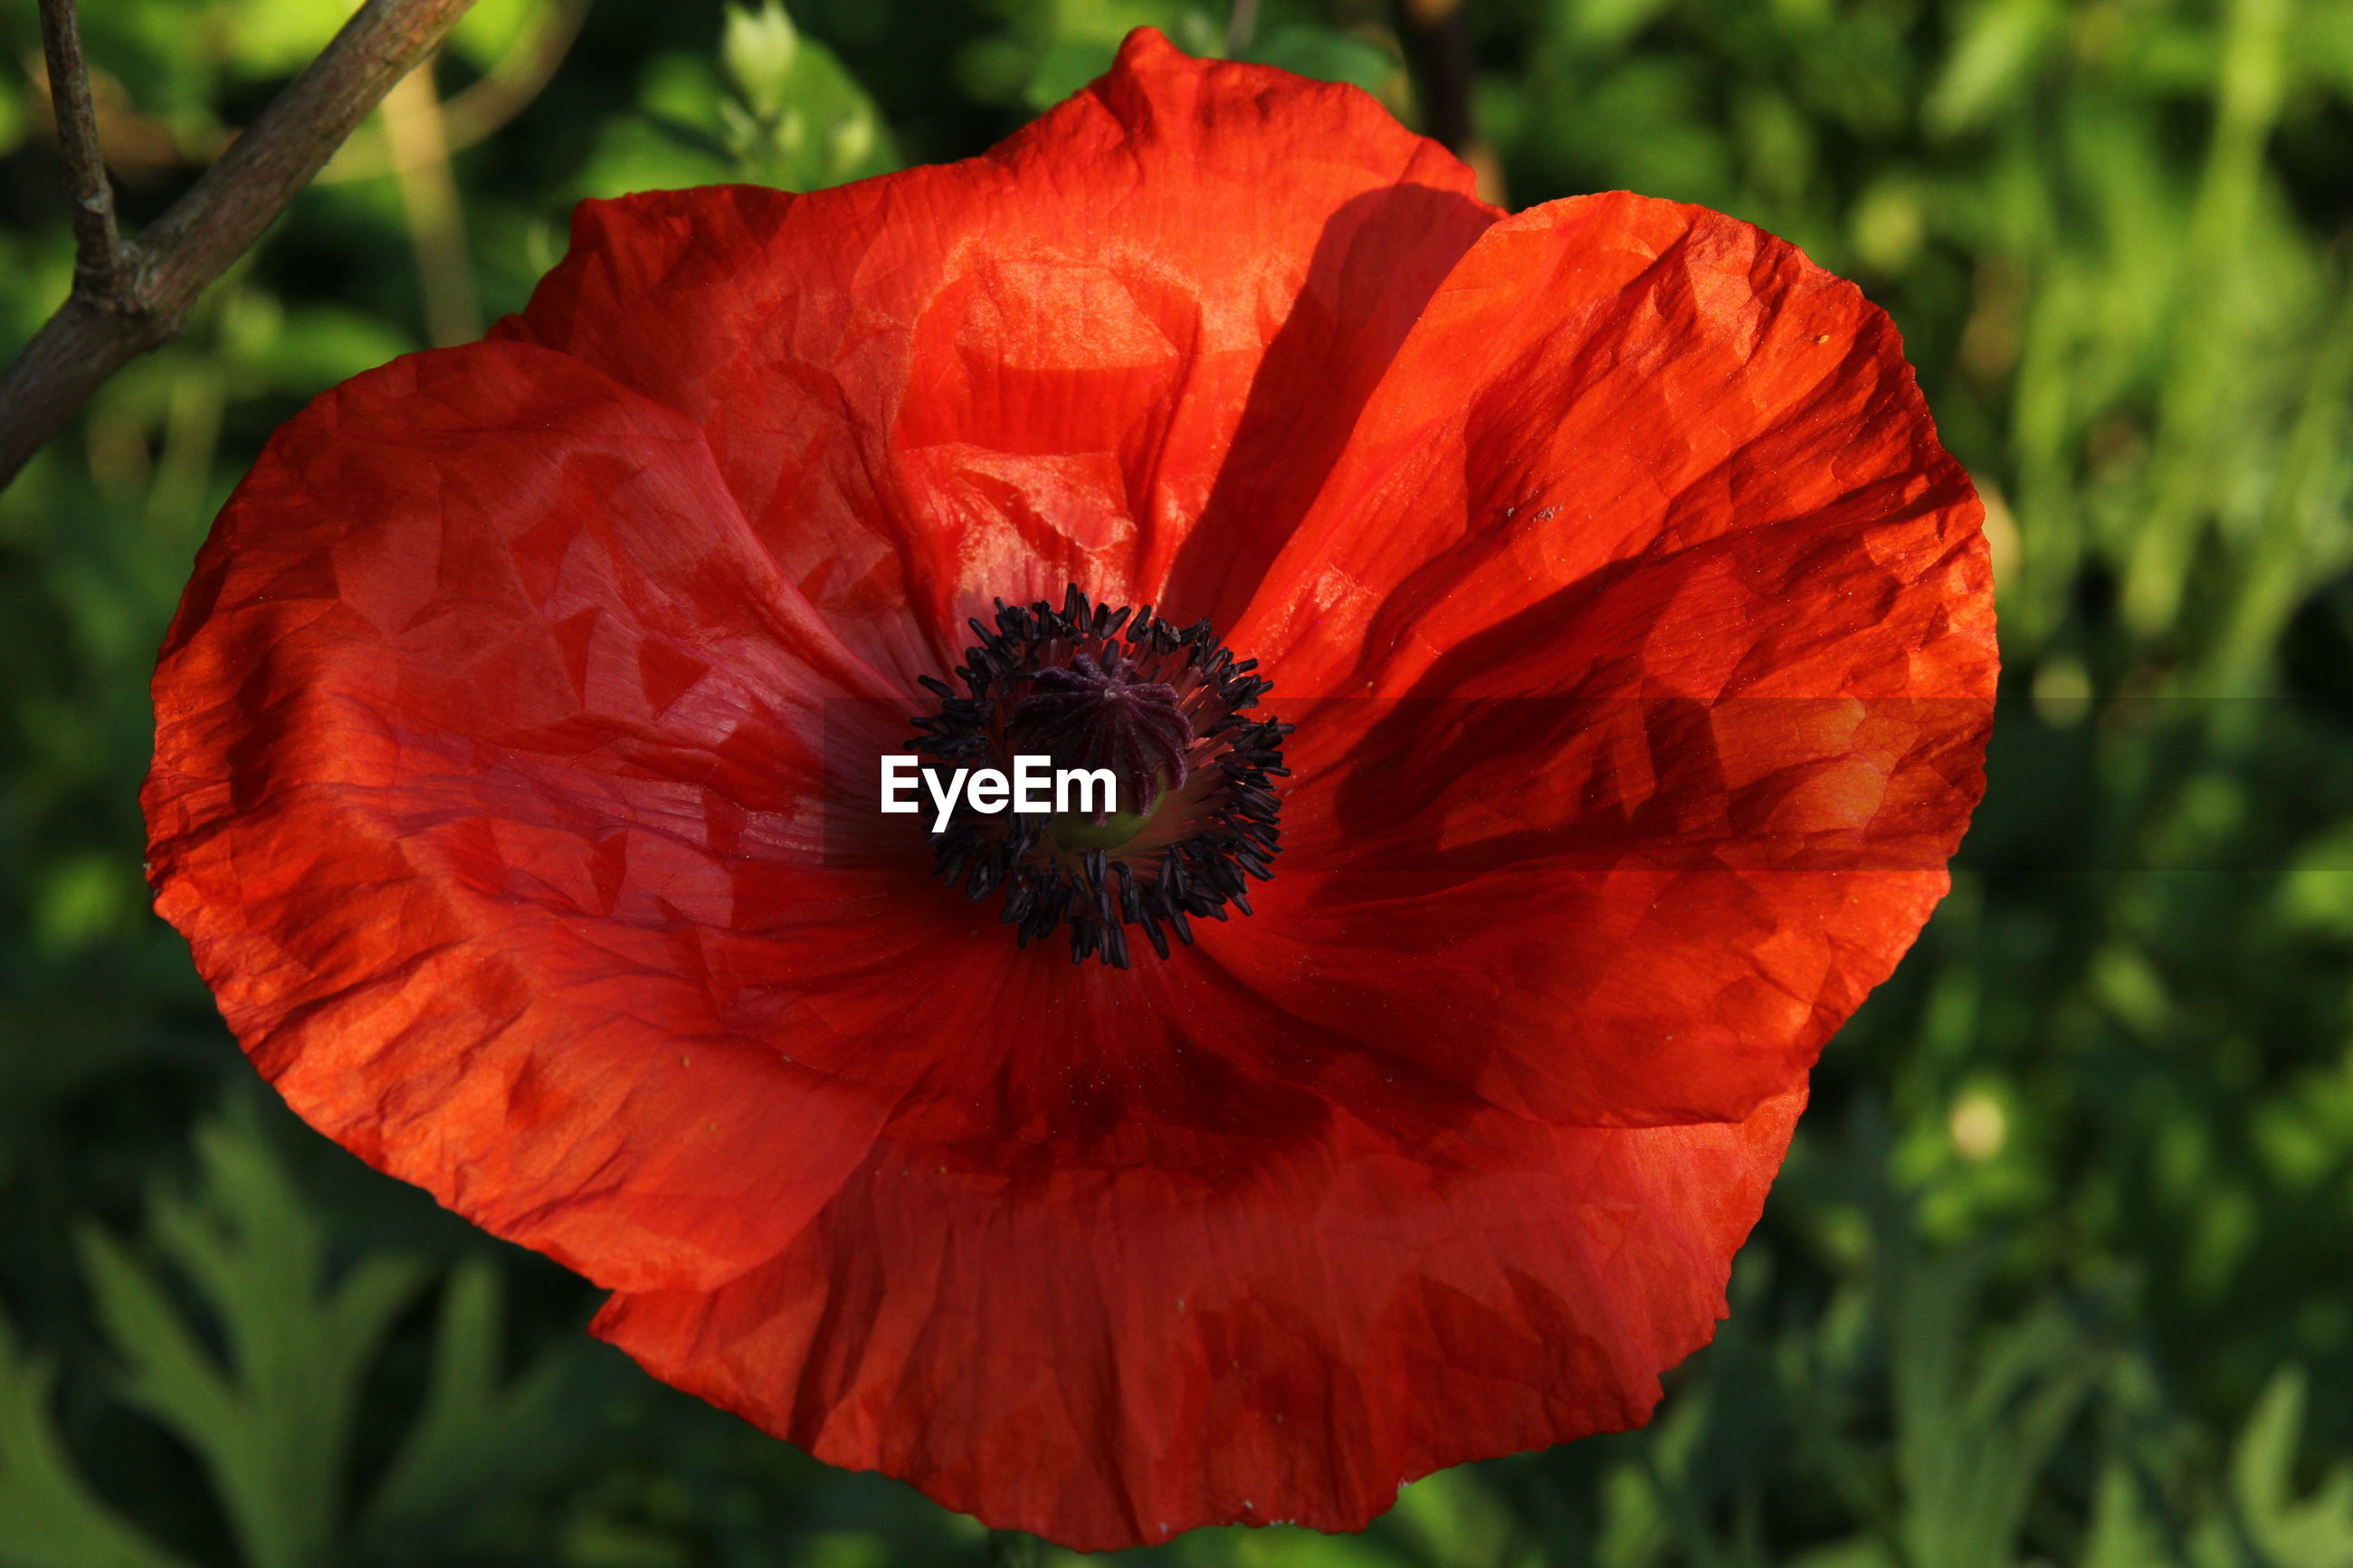 Close-up of red poppy growing outdoors